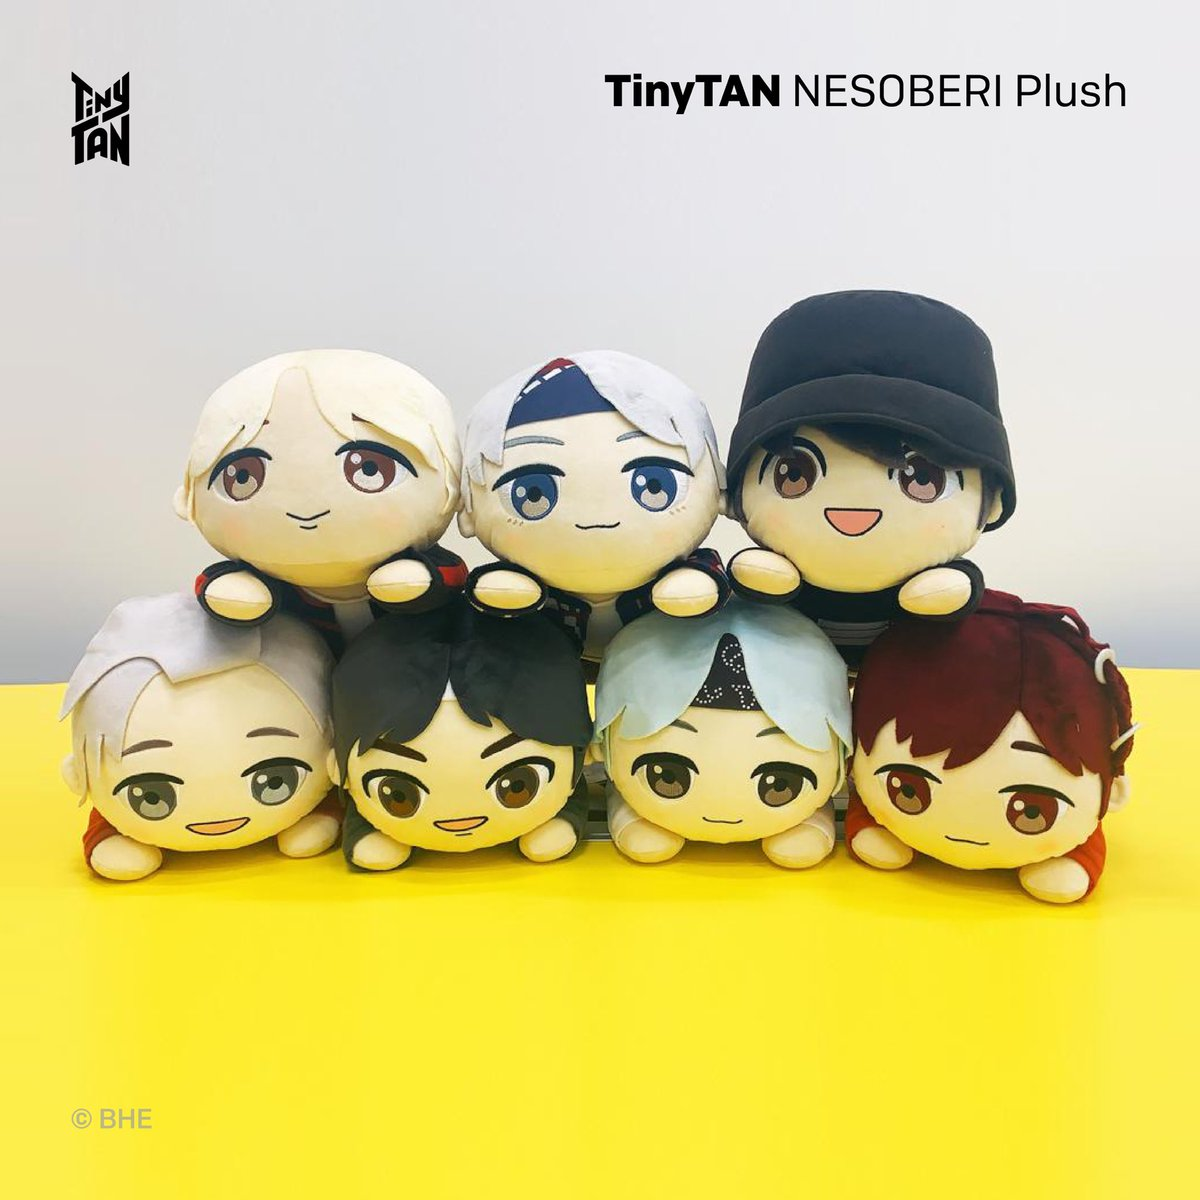 [February 2021] Newly Launched Licensed Products! TinyTAN @seganewsnavi NESOBERI Plush, Premium Blanket available in Japan